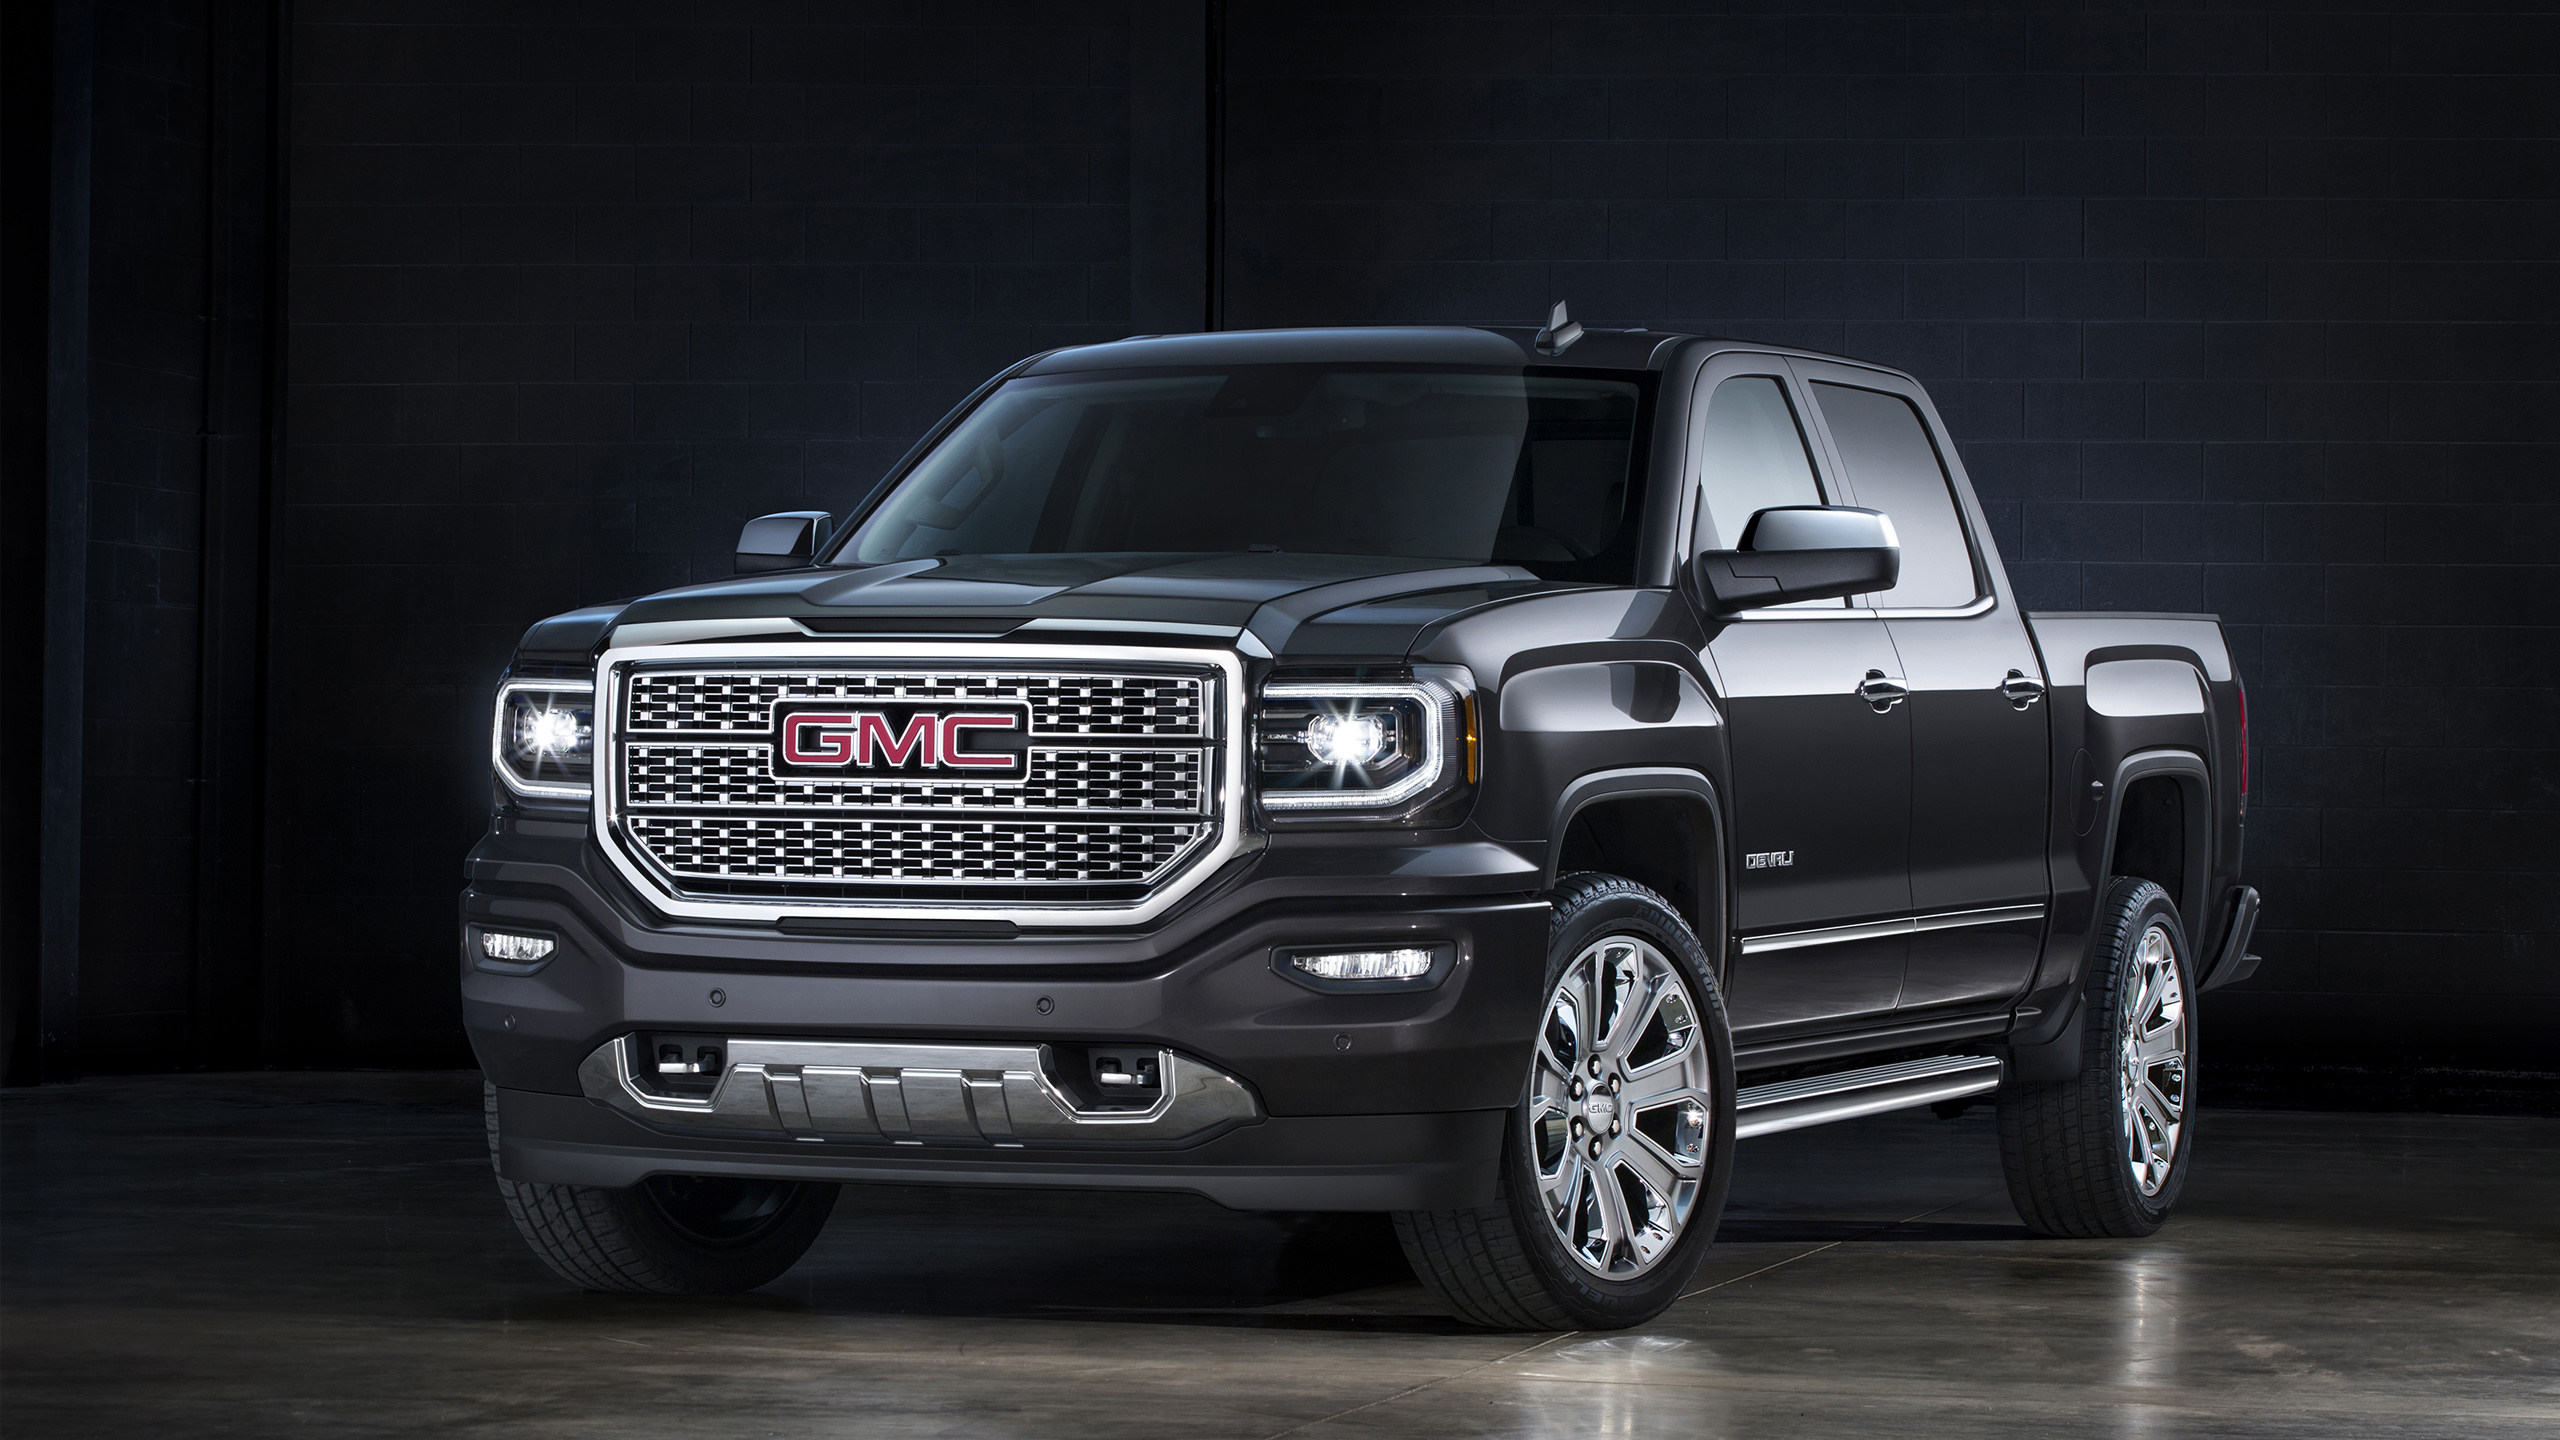 2016 gmc sierra denali wallpaper hd car wallpapers. Black Bedroom Furniture Sets. Home Design Ideas